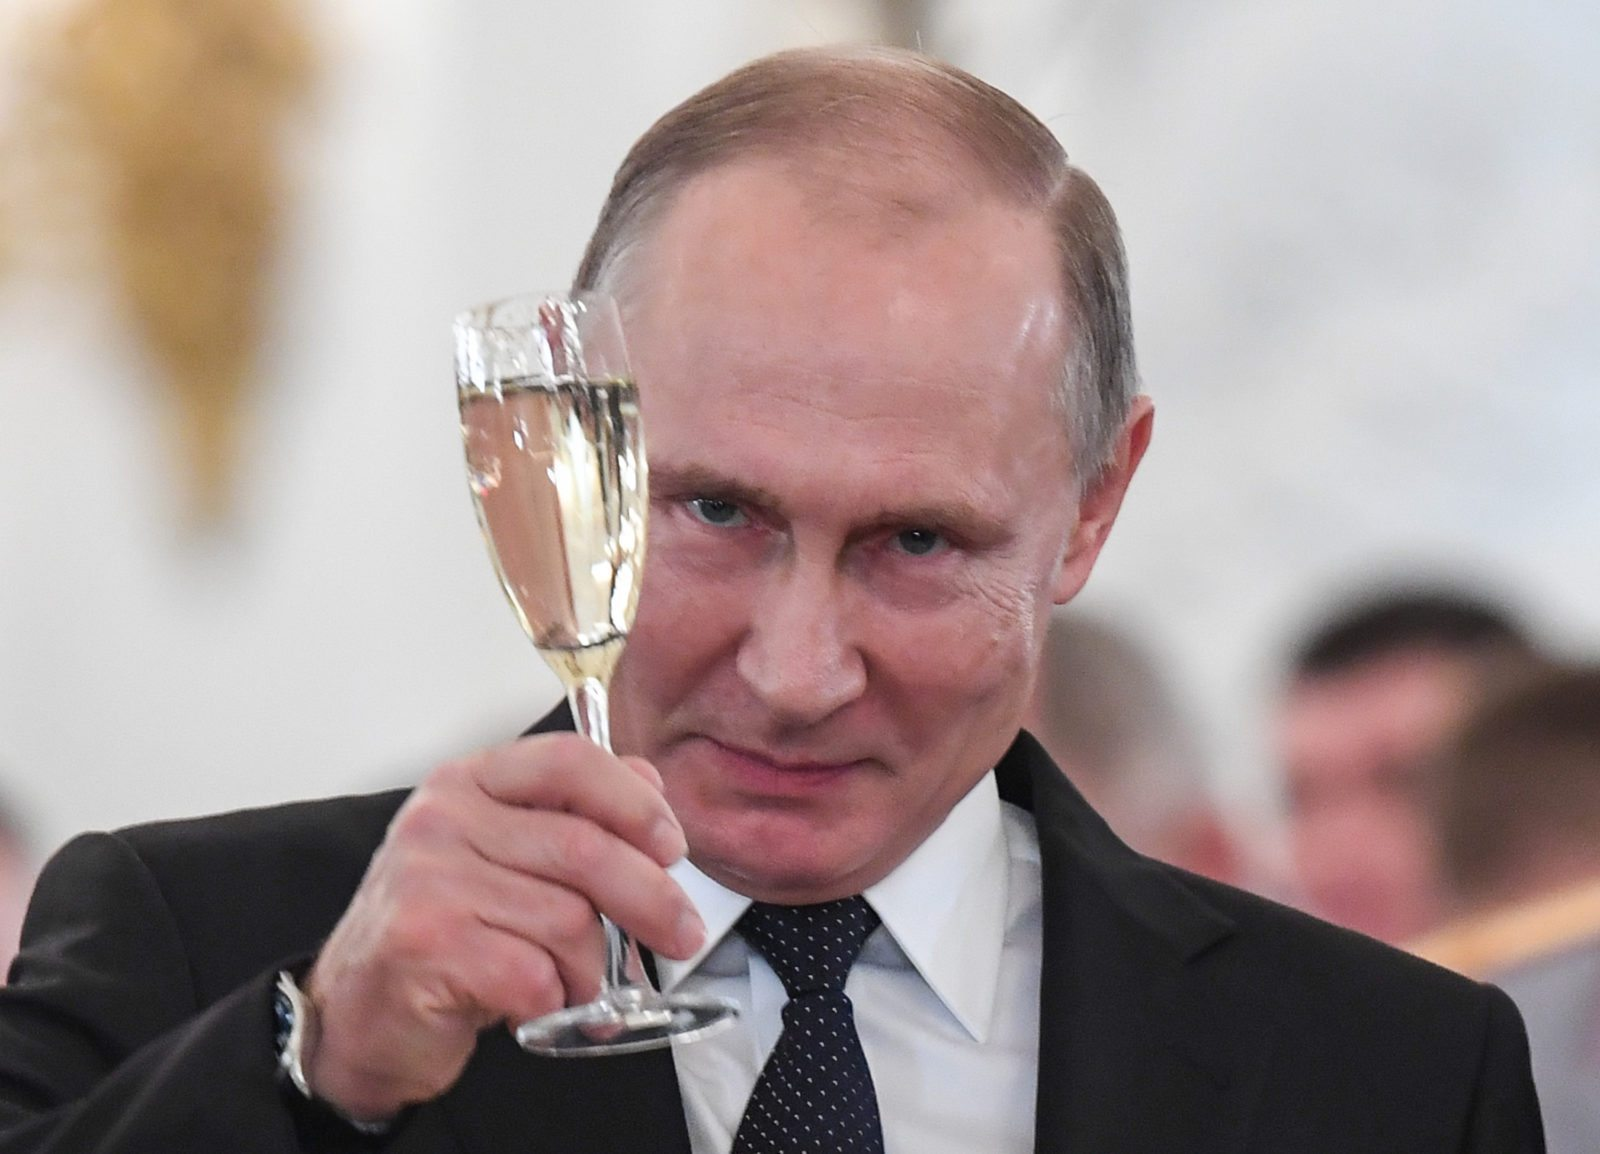 Pussy Riot members had staged the protest to mark Vladimir Putin's birthday